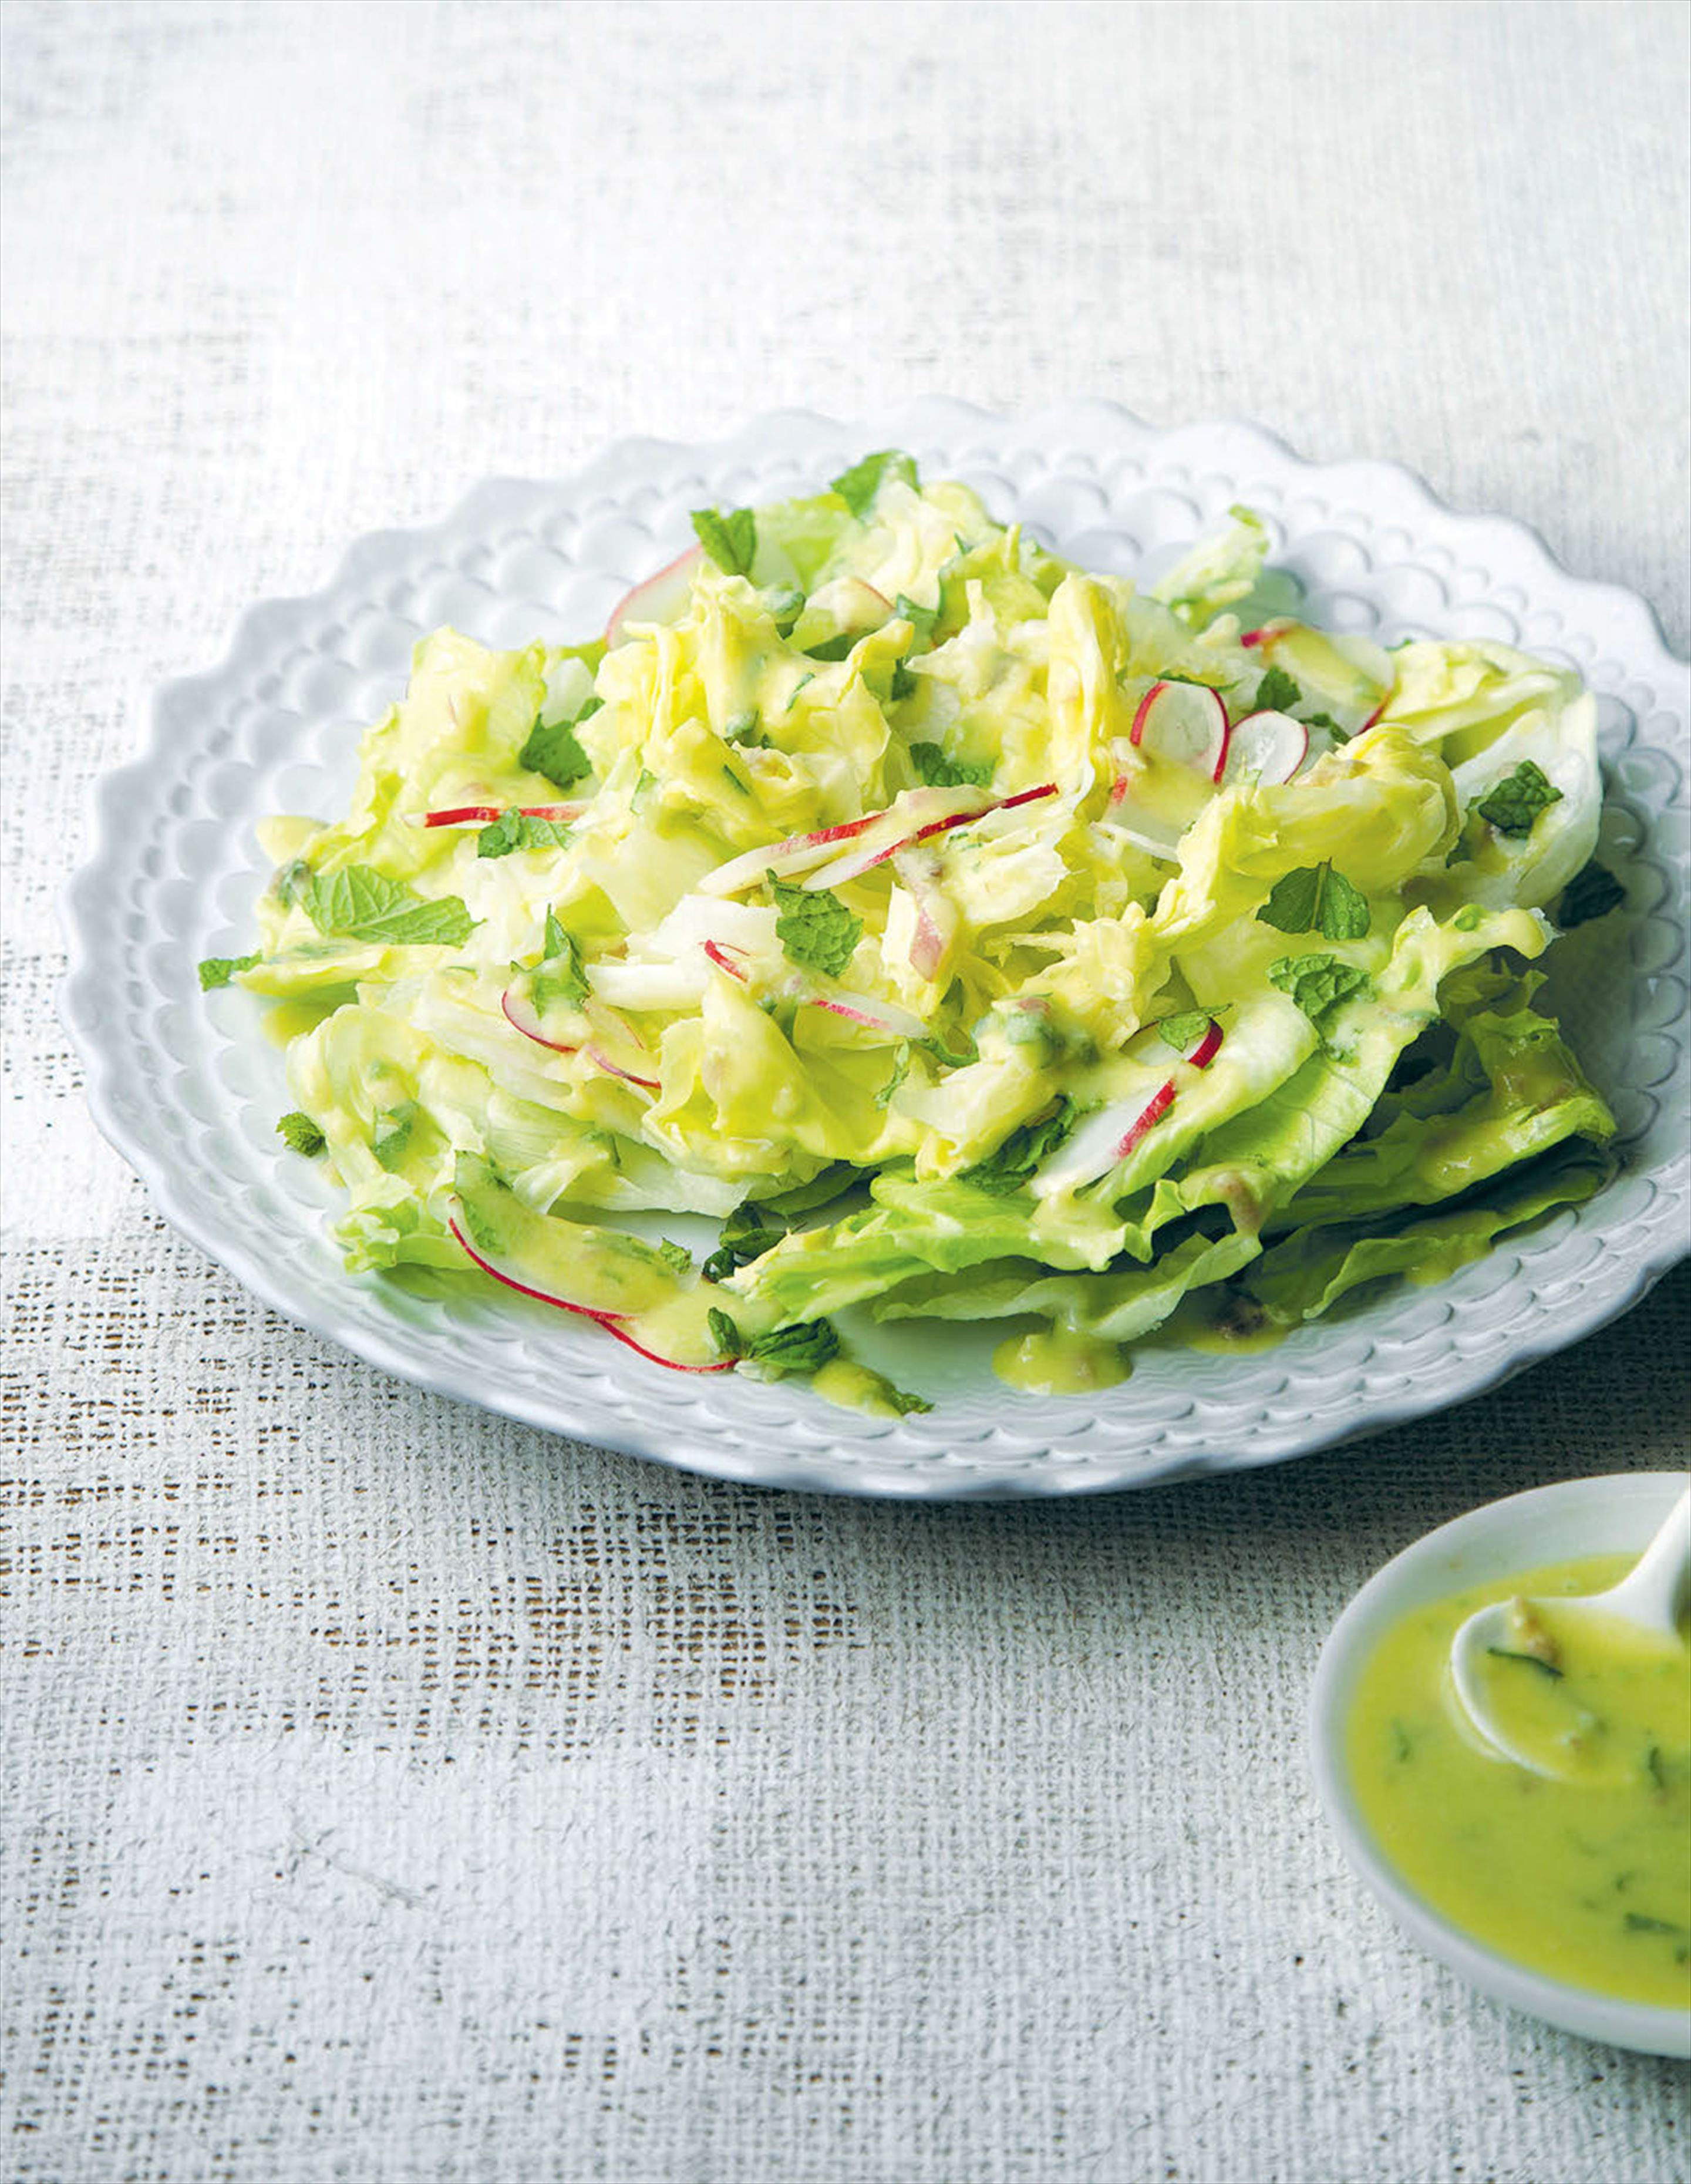 Iceberg lettuce with mint, radish and avocado dressing